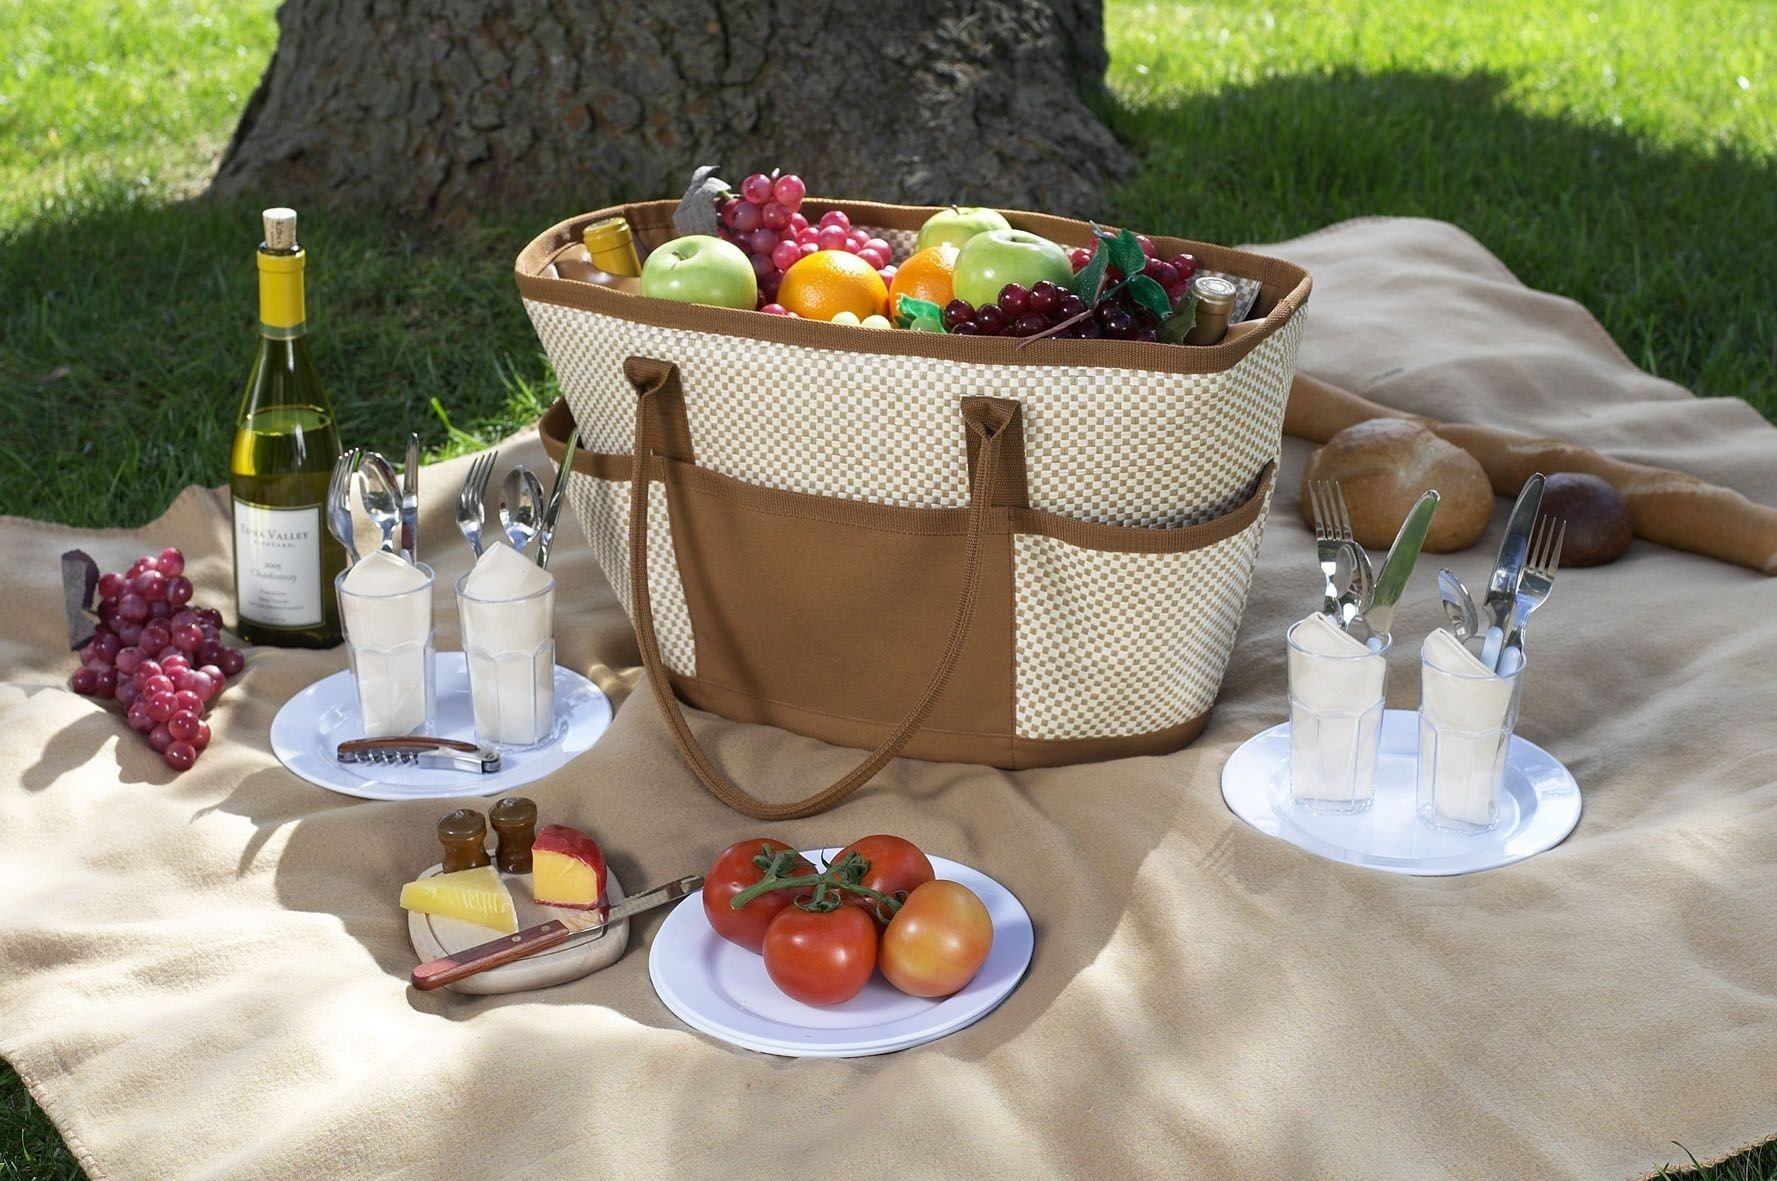 10 Unique Picnic Food Ideas For A Date picnic ideas for summer picnic lunches picnics and white wine